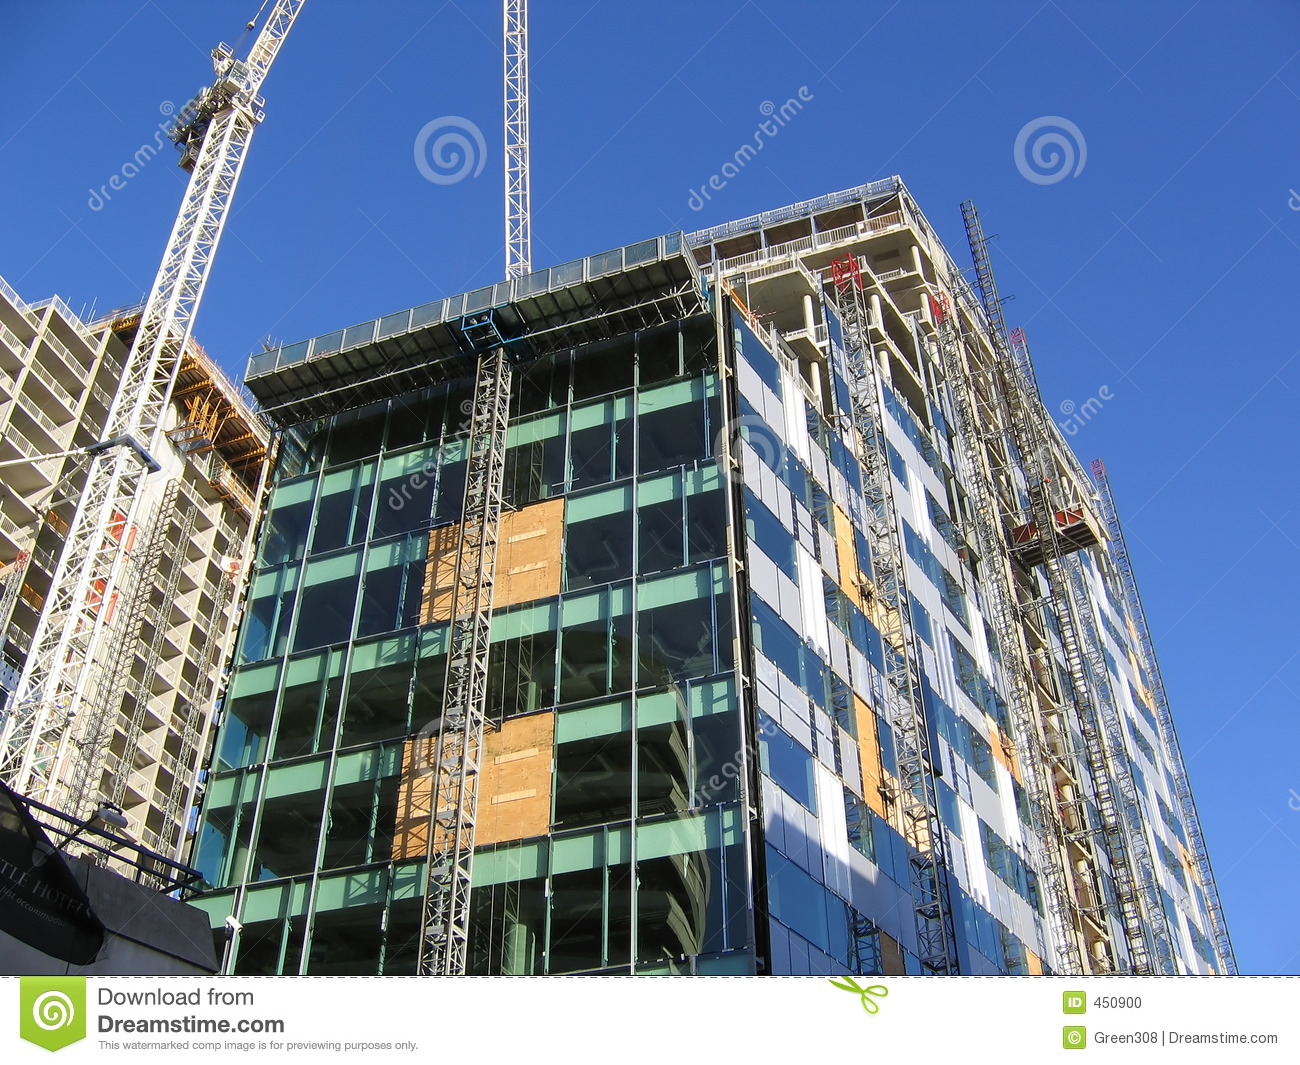 Download Construction Of Modern Office Building In Liverpool Stock Photo - Image of cranes, english: 450900